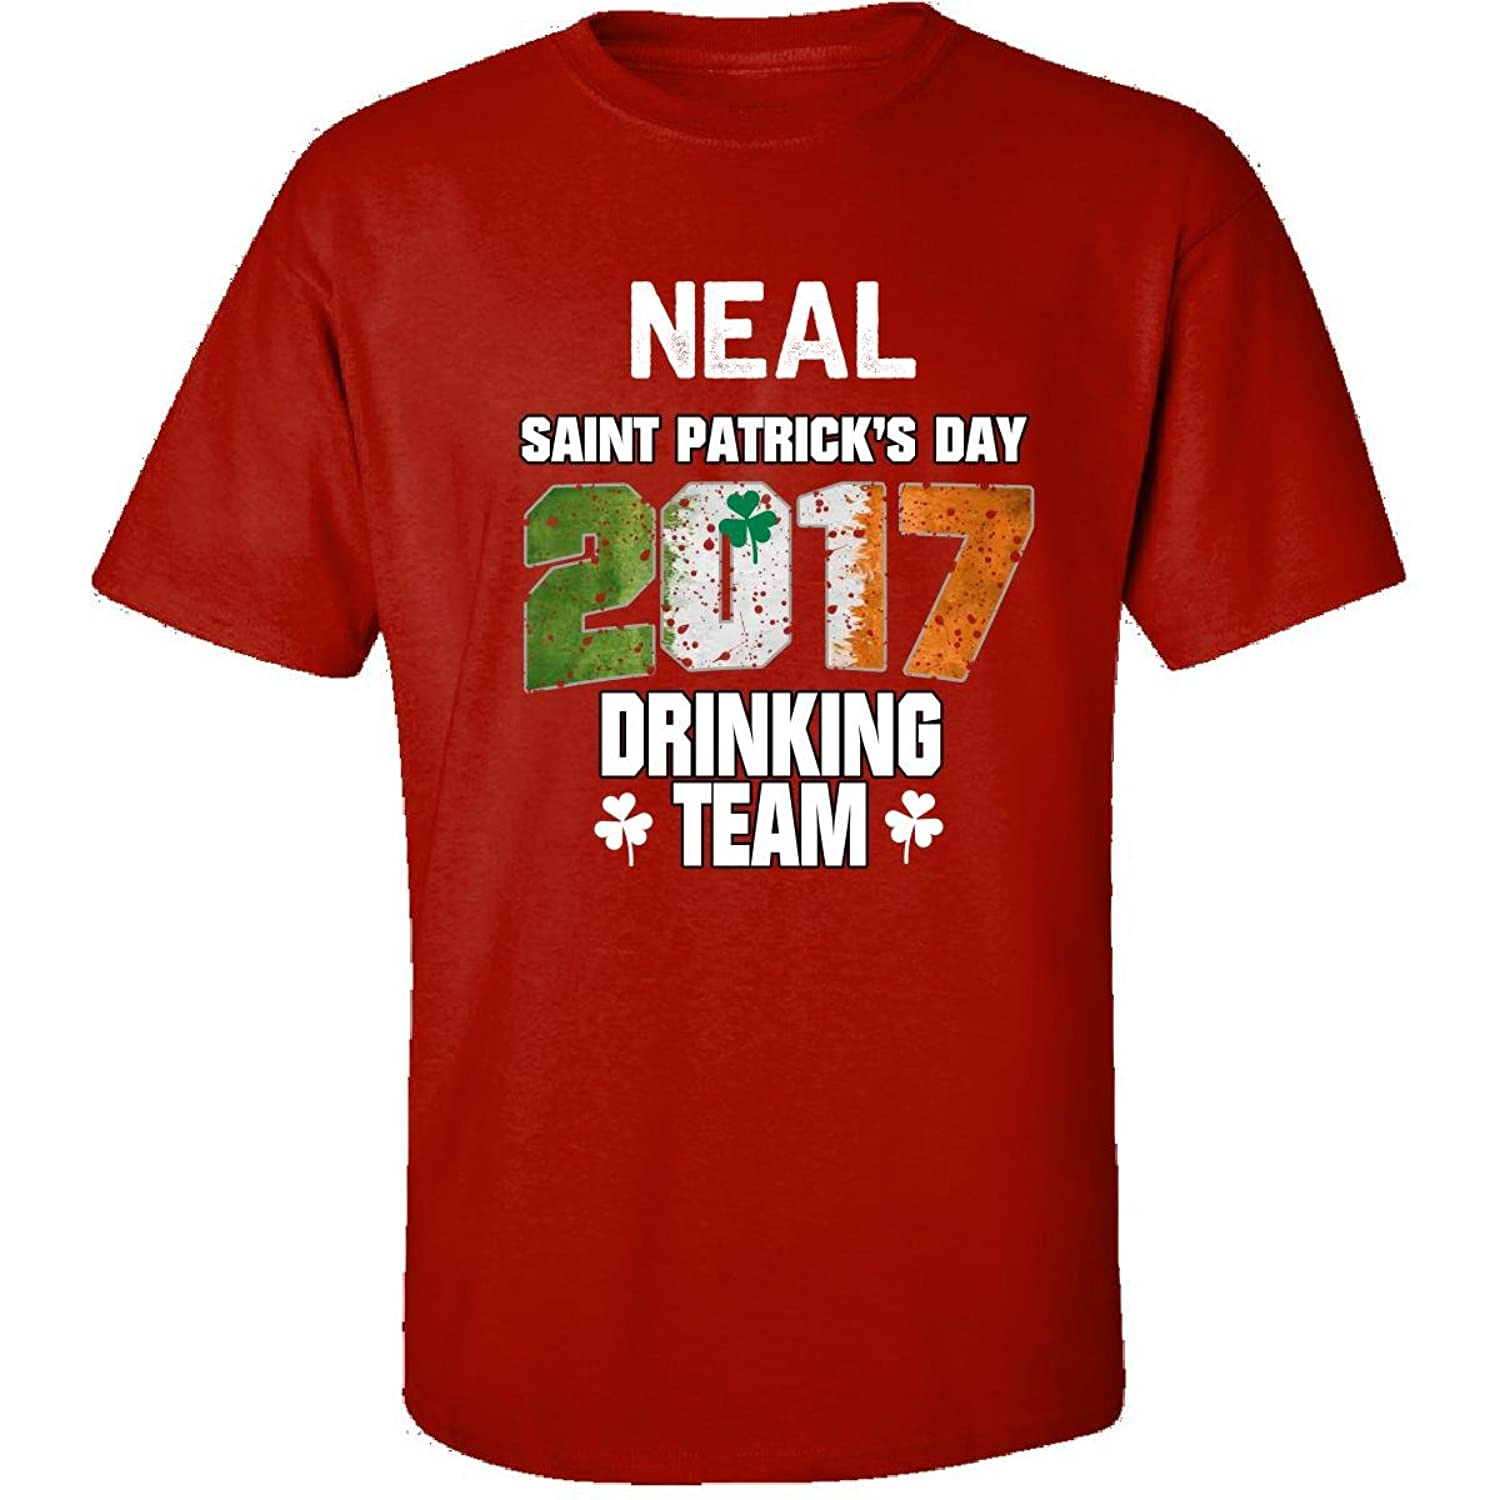 Neal Irish St Patricks Day 2017 Drinking Team - Adult Shirt